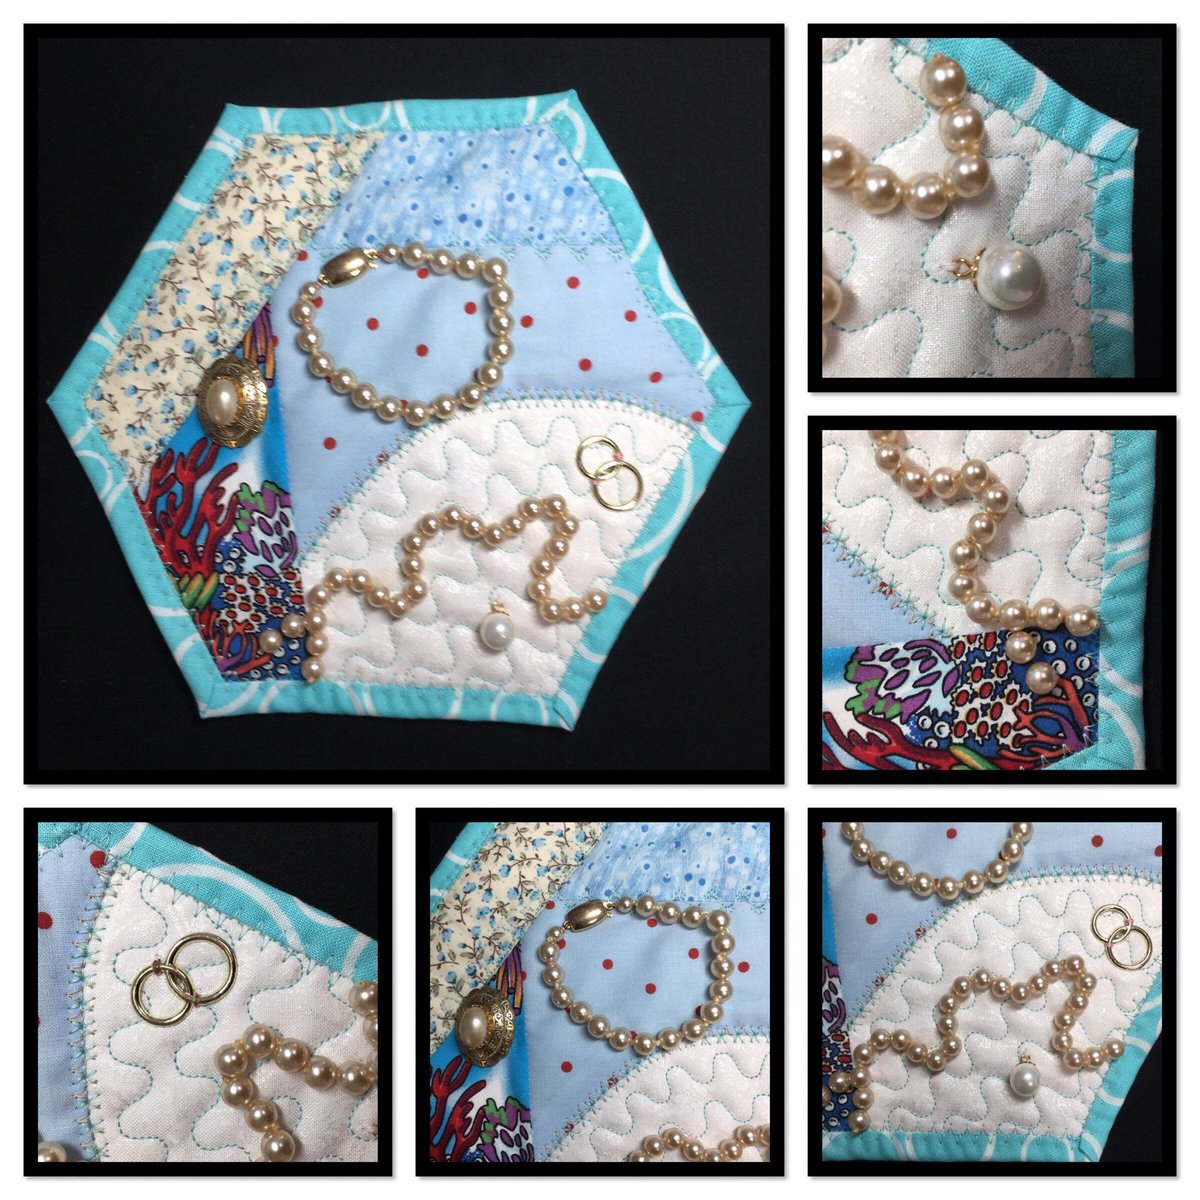 Excited to share this item from my #etsy shop: Oceans Bounty Quilt - mini quilt - wall hanging embellished with #pearls and mock #wedding rings. https://etsy.me/2PDLs9s #pearlanniversary #weddinganniversary pic.twitter.com/VlZOHsrdzX